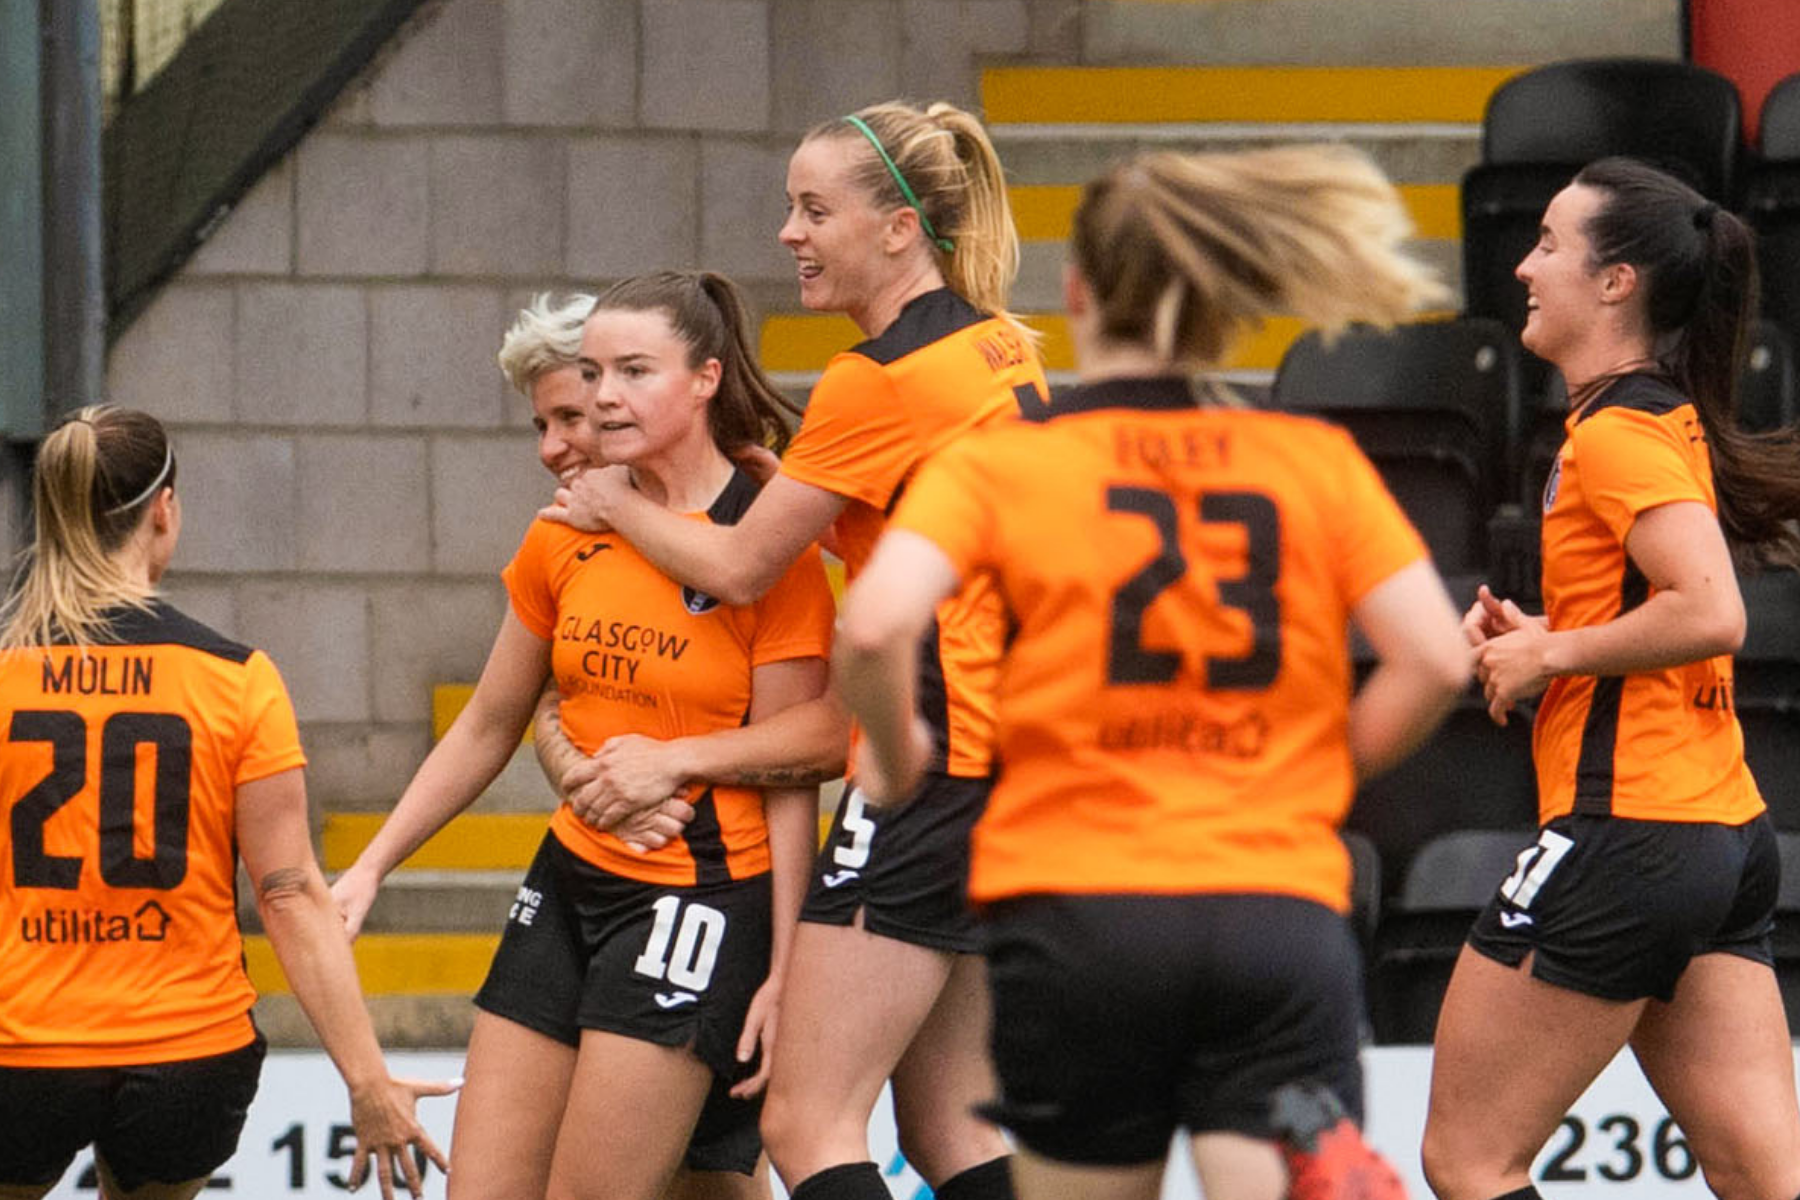 Glasgow City return to top of SWPL 1 after Partick Thistle win